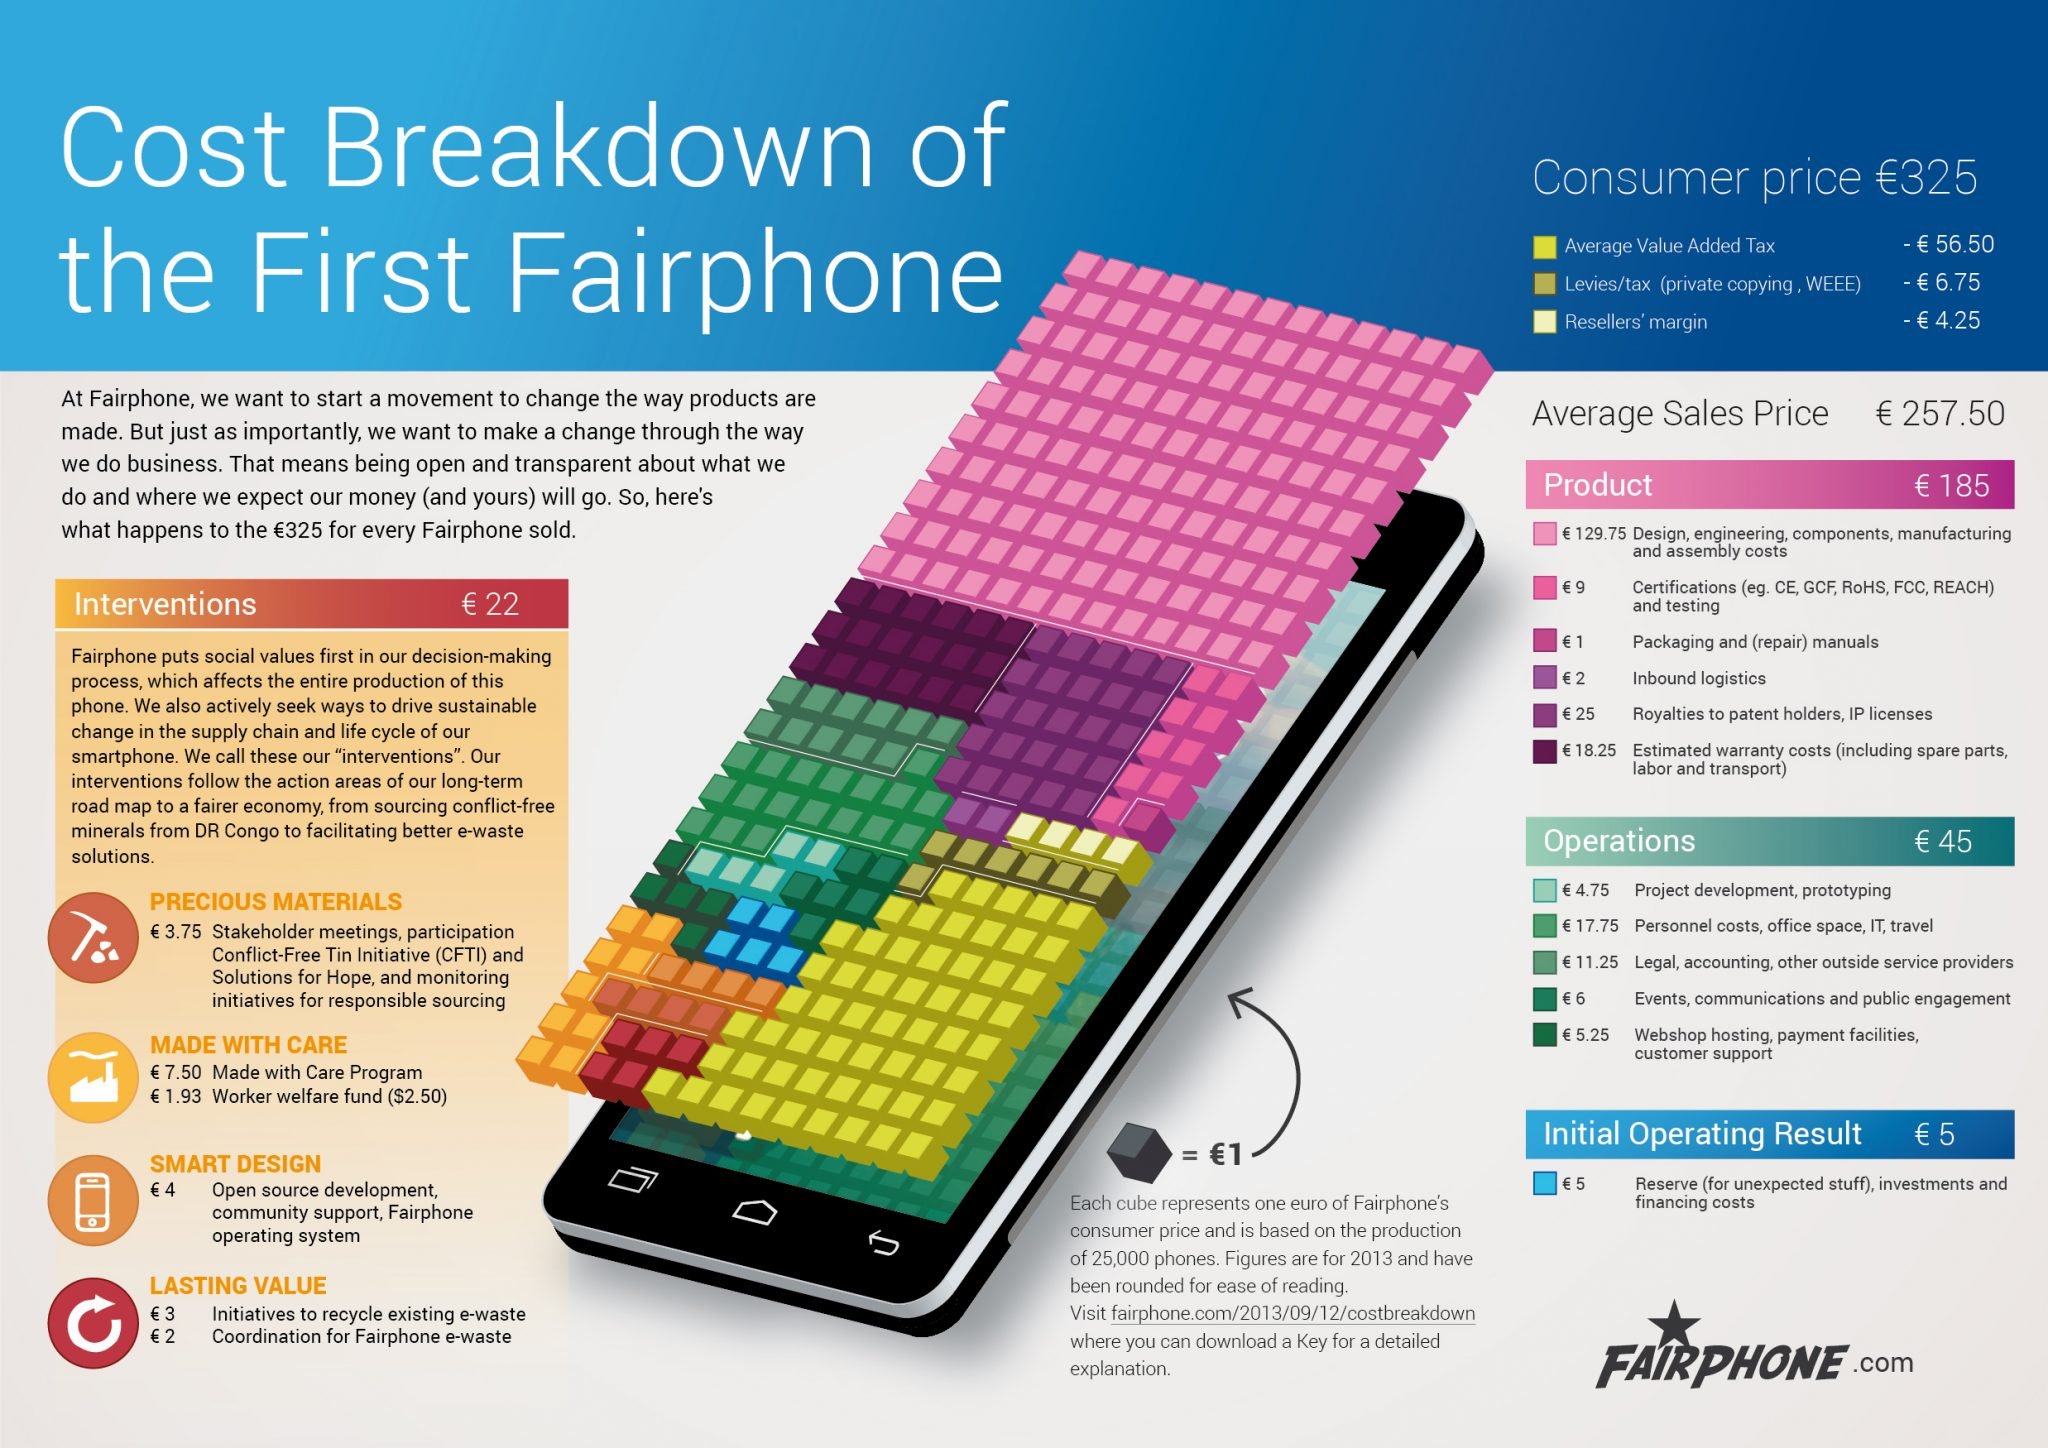 Fairphone Cost Breakdown Sept 2013